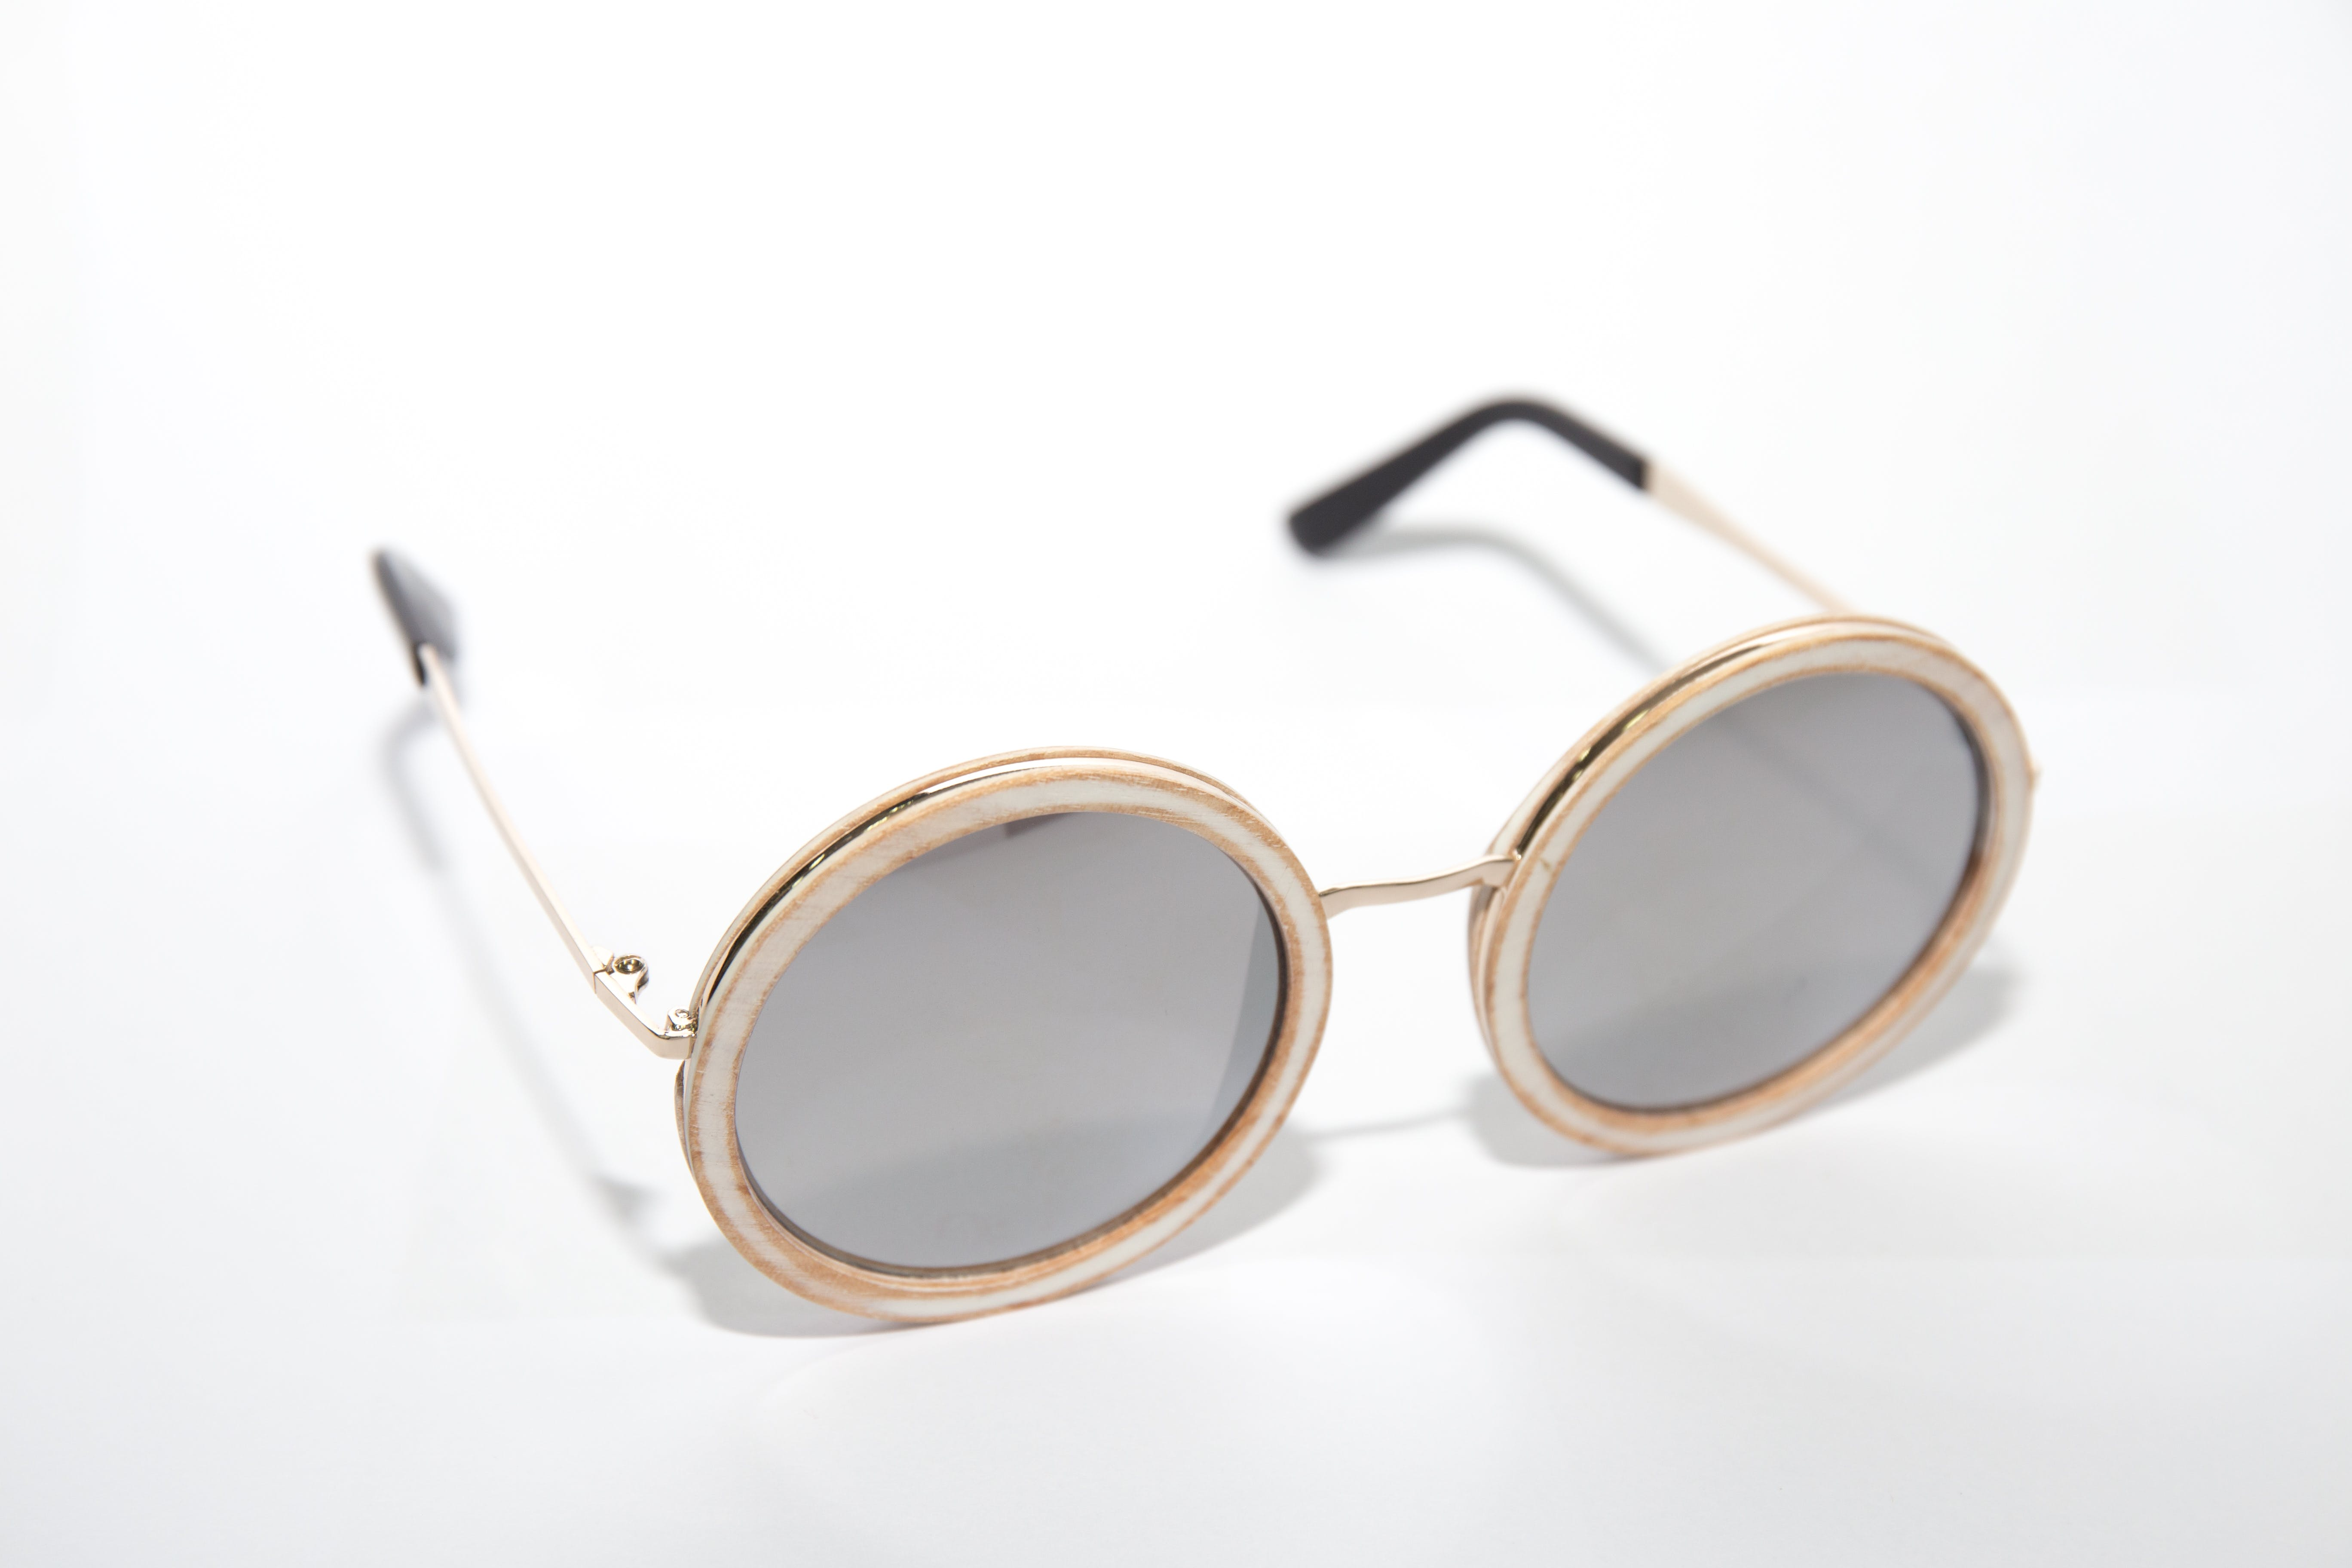 Sunglasses With Frames